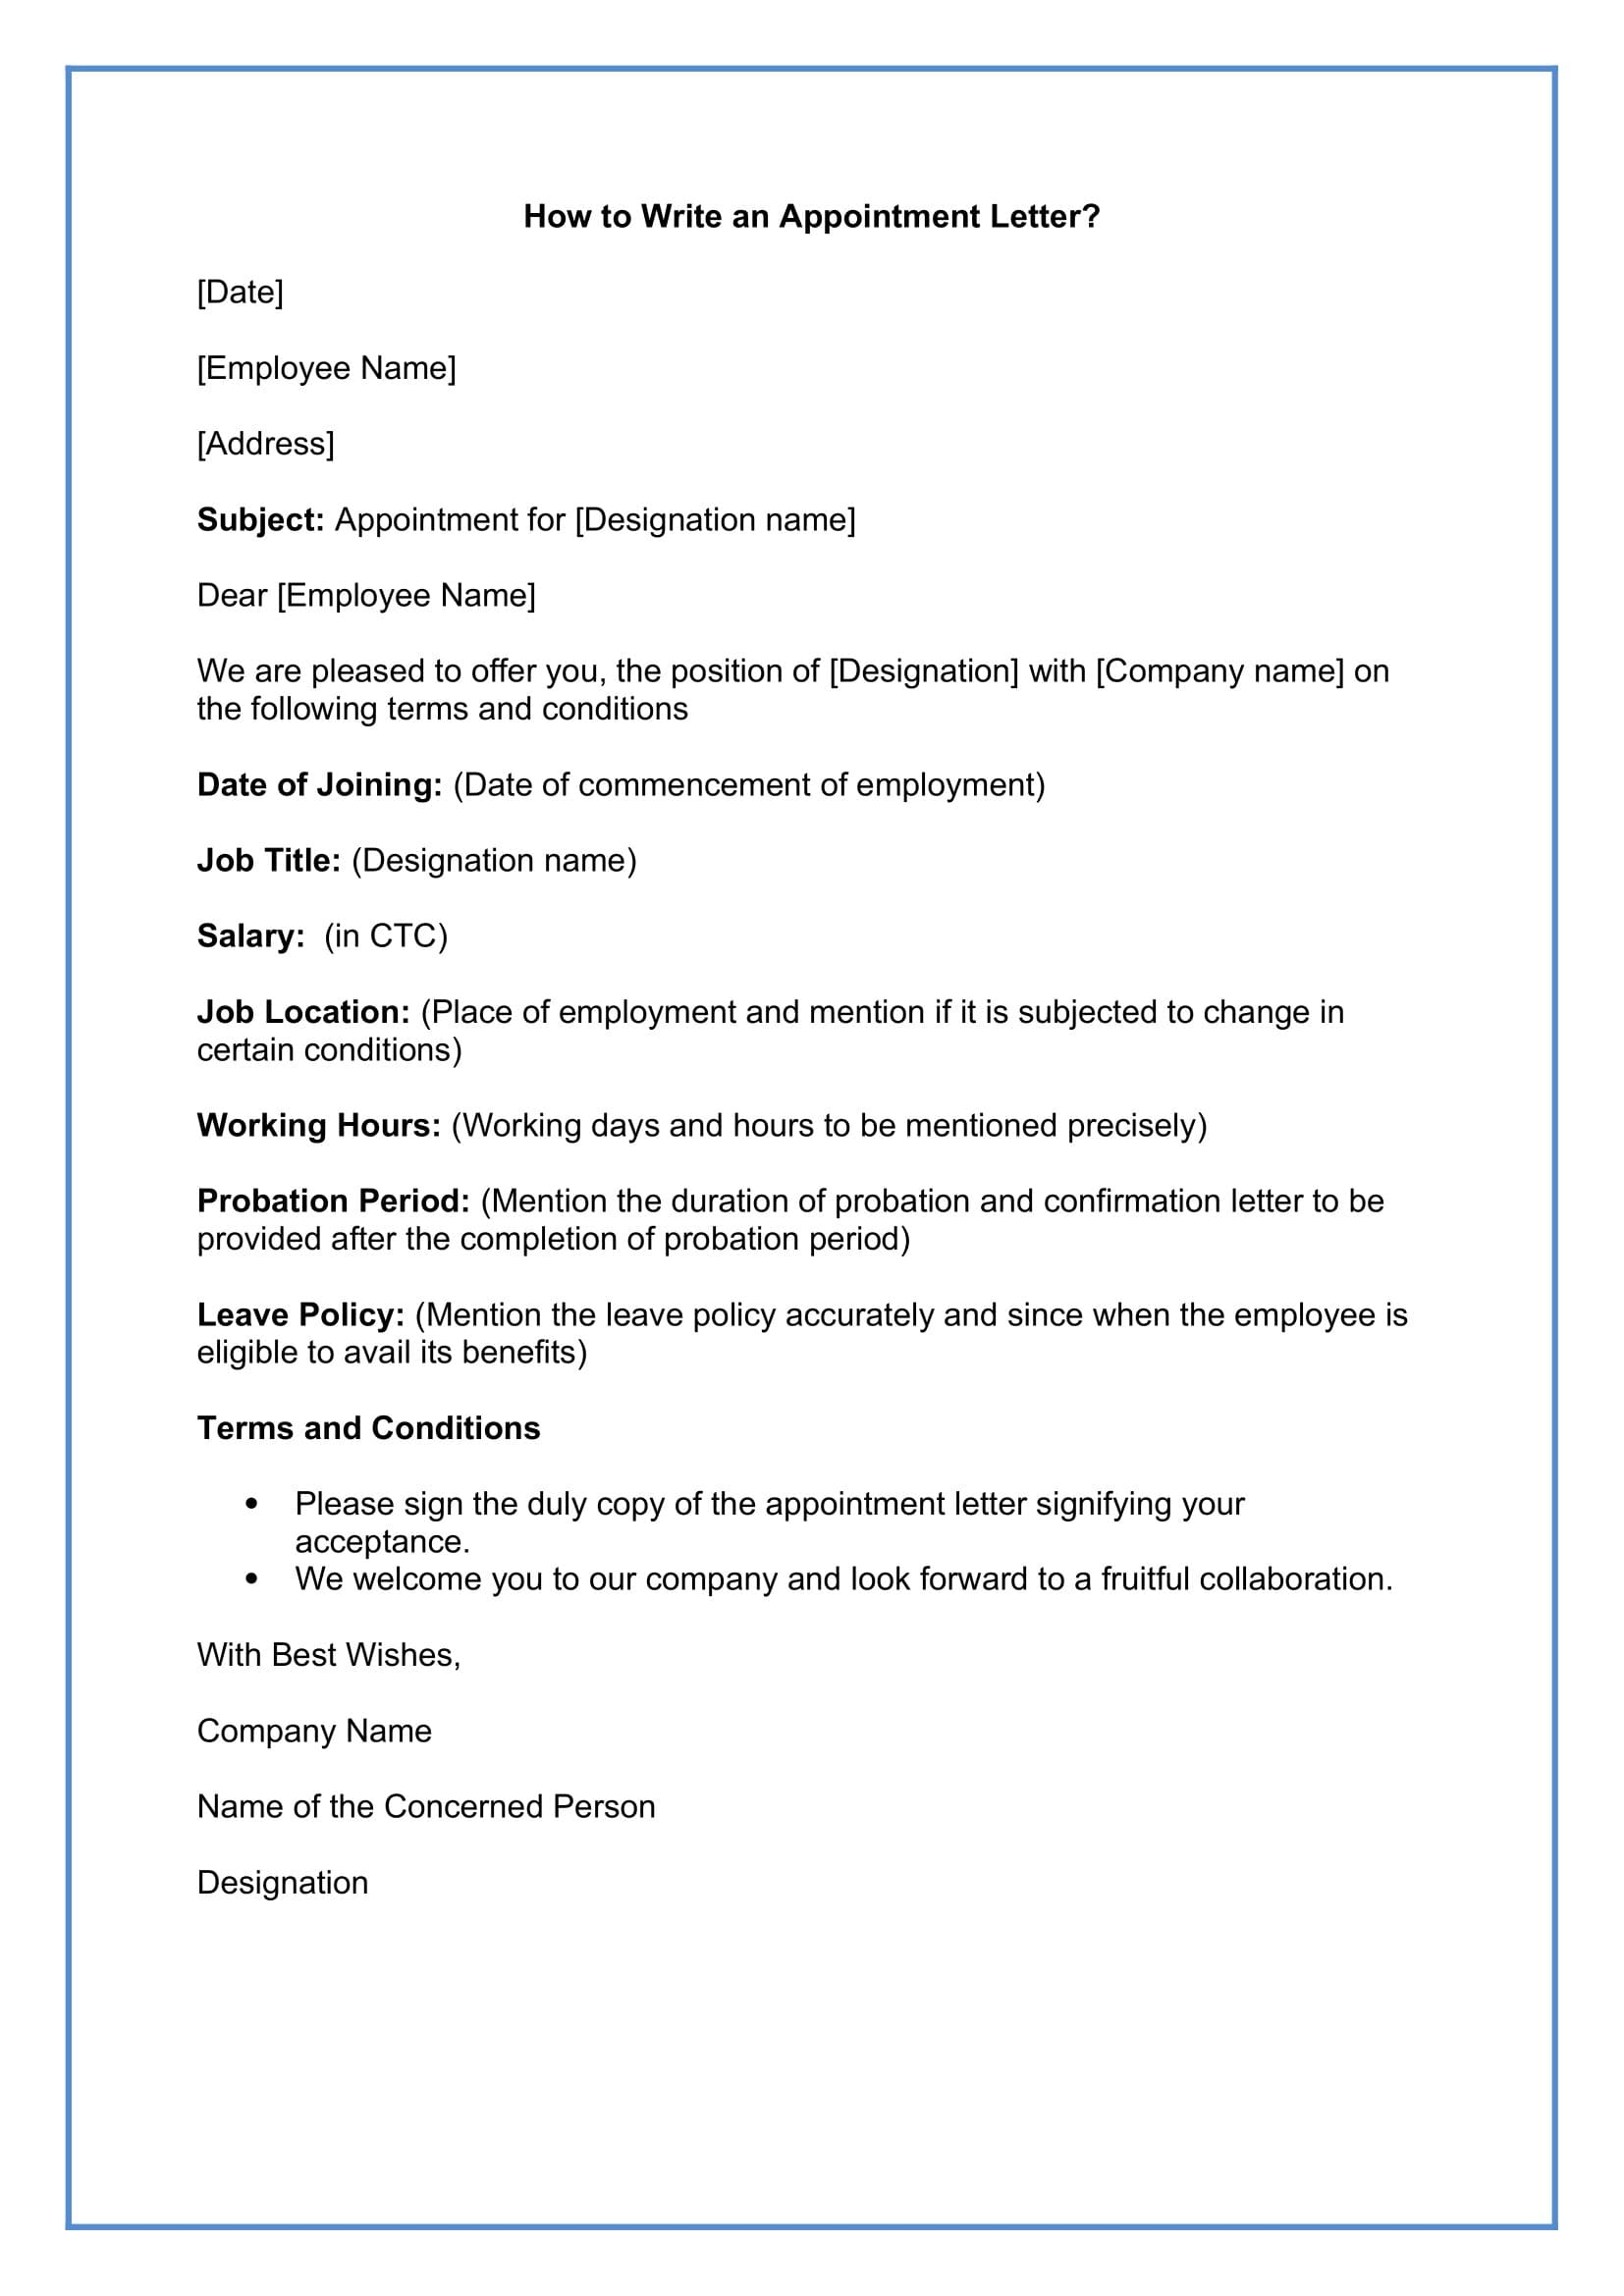 How to Write an Appointment Letter